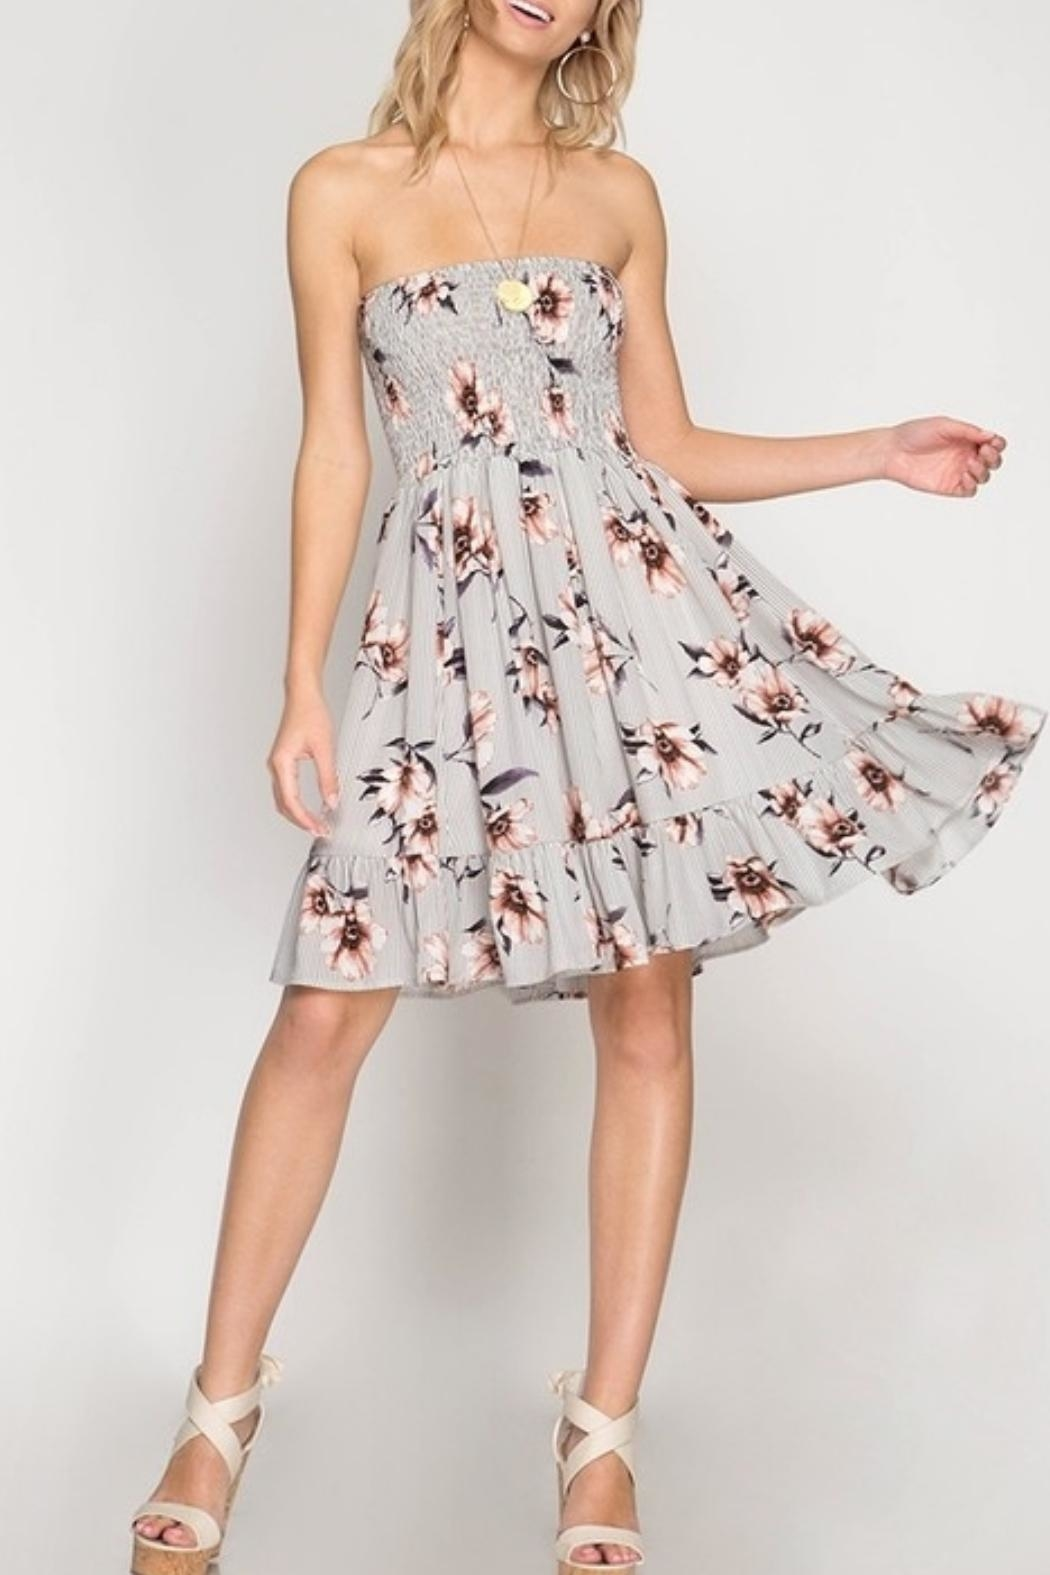 She + Sky Strapless Floral Dress - Main Image